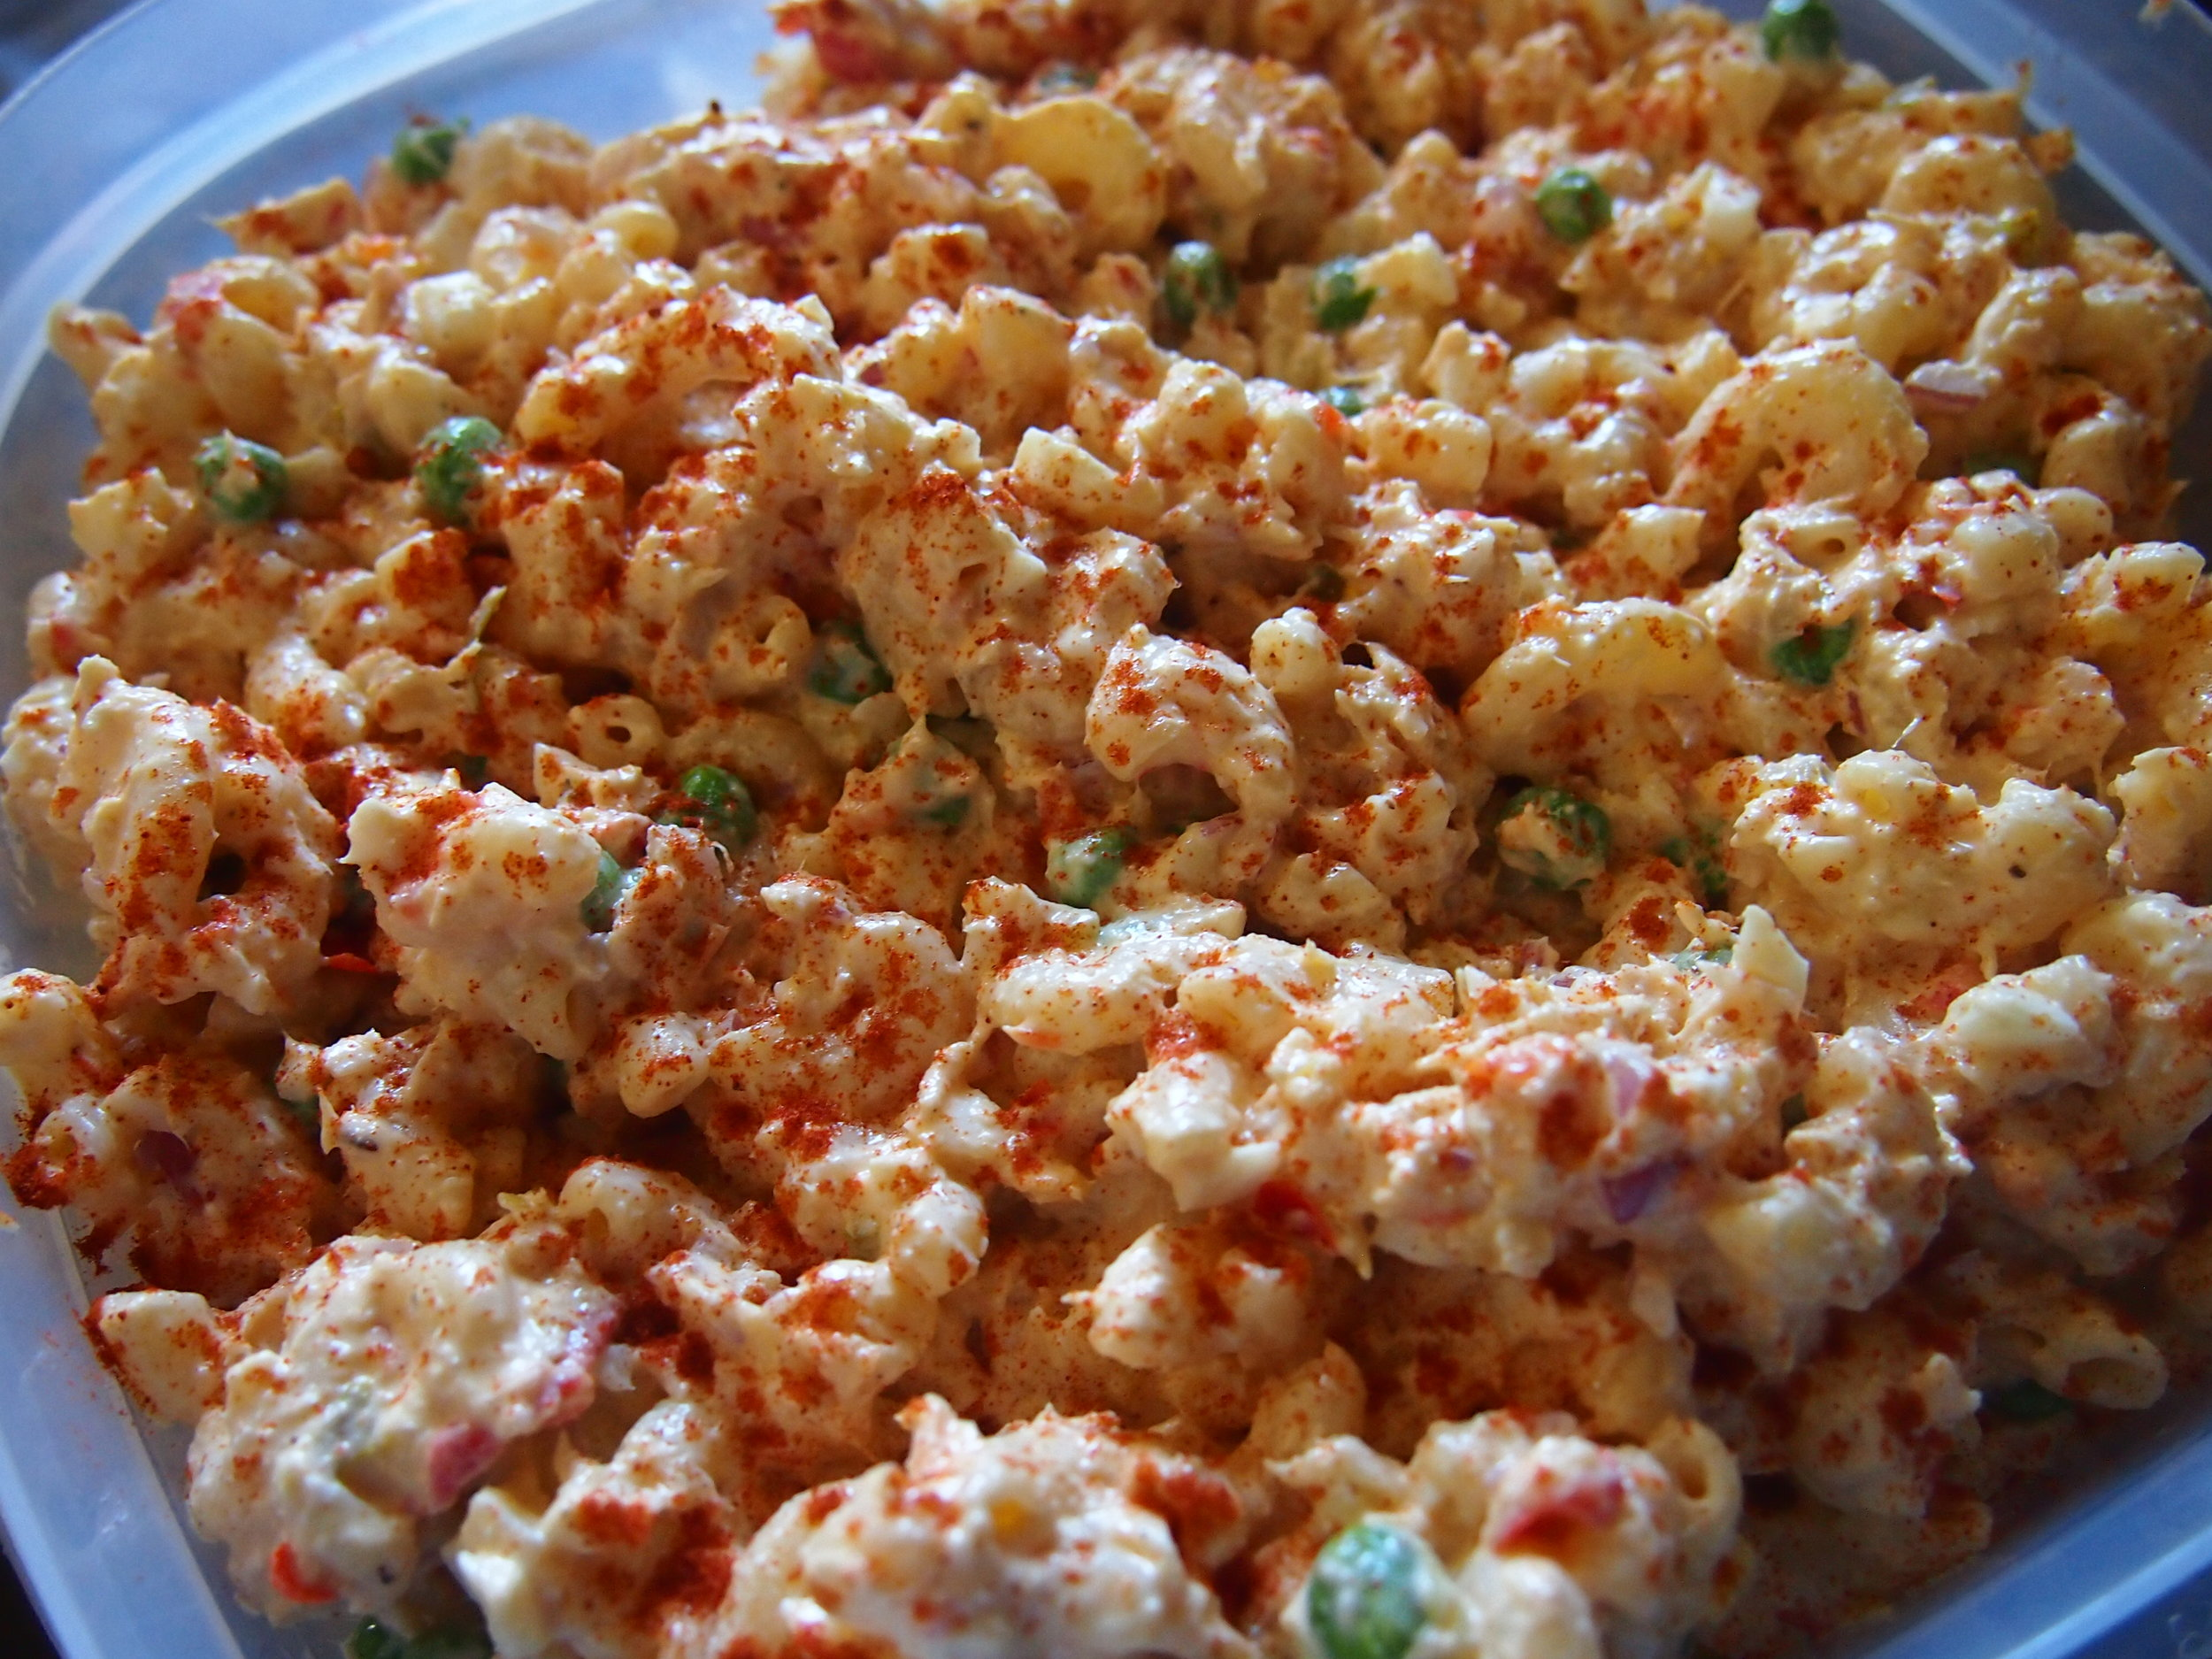 Macaroni Salad with tuna and smoked trout.